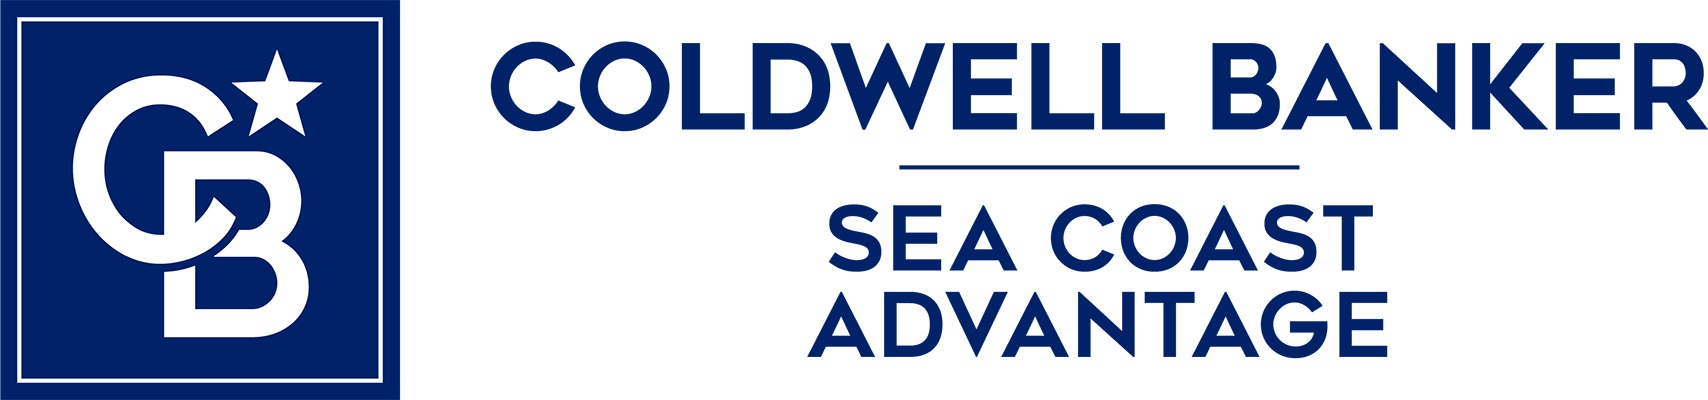 Ellen Herring - Coldwell Banker Sea Coast Advantage Realty Logo